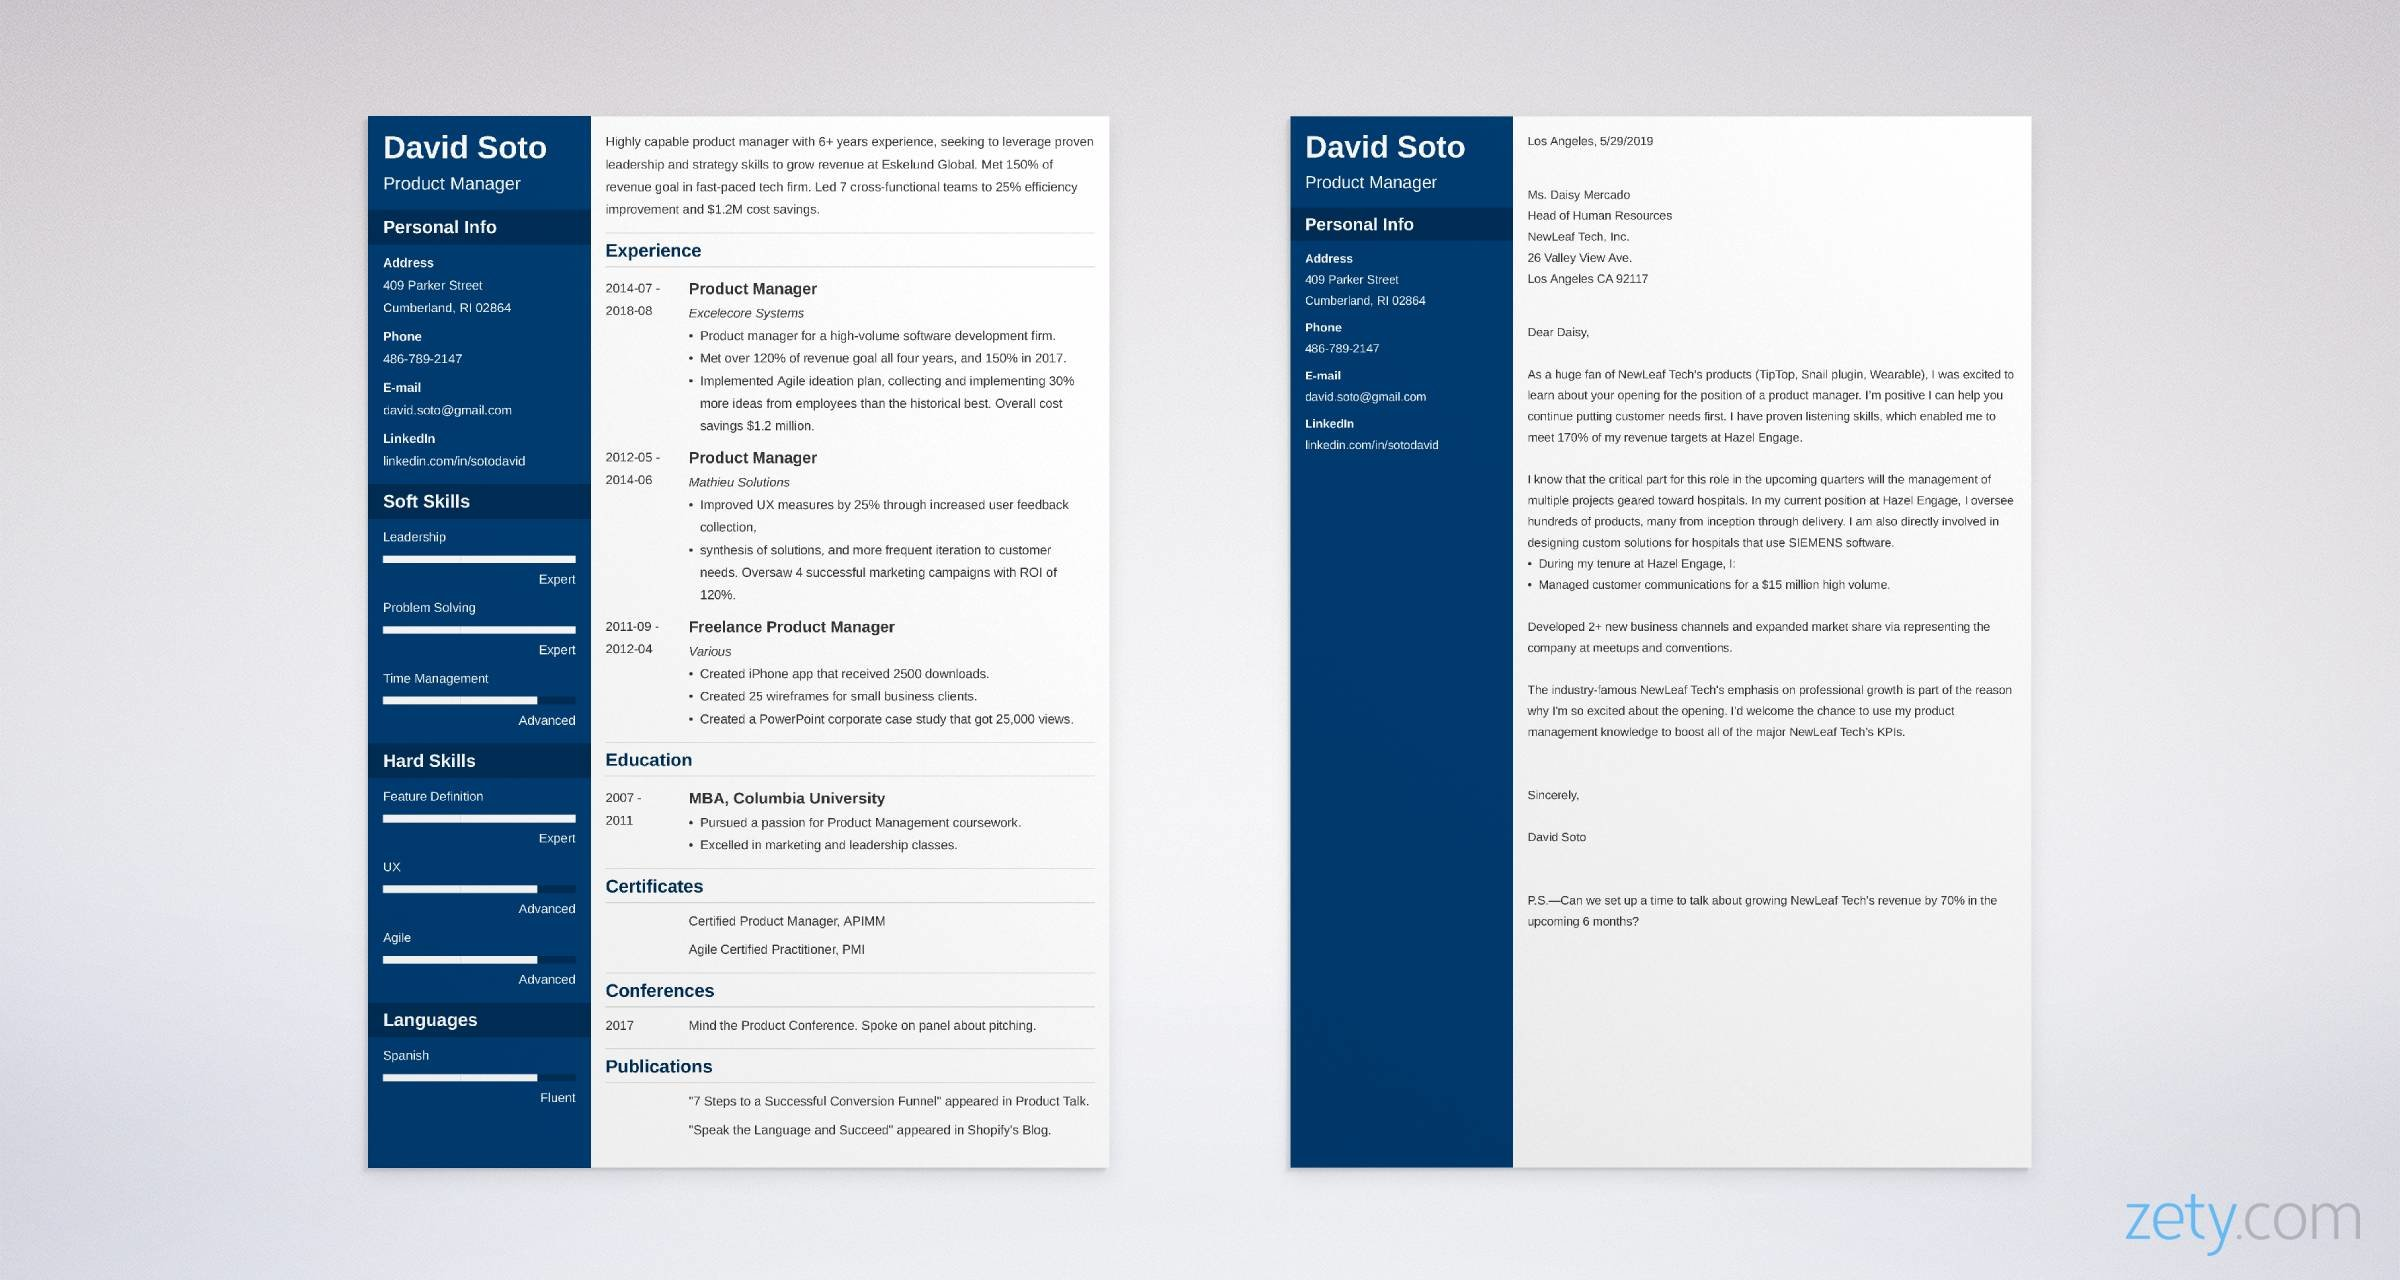 Product Manager Cover Letter: Samples, Format, and 10+ Tips